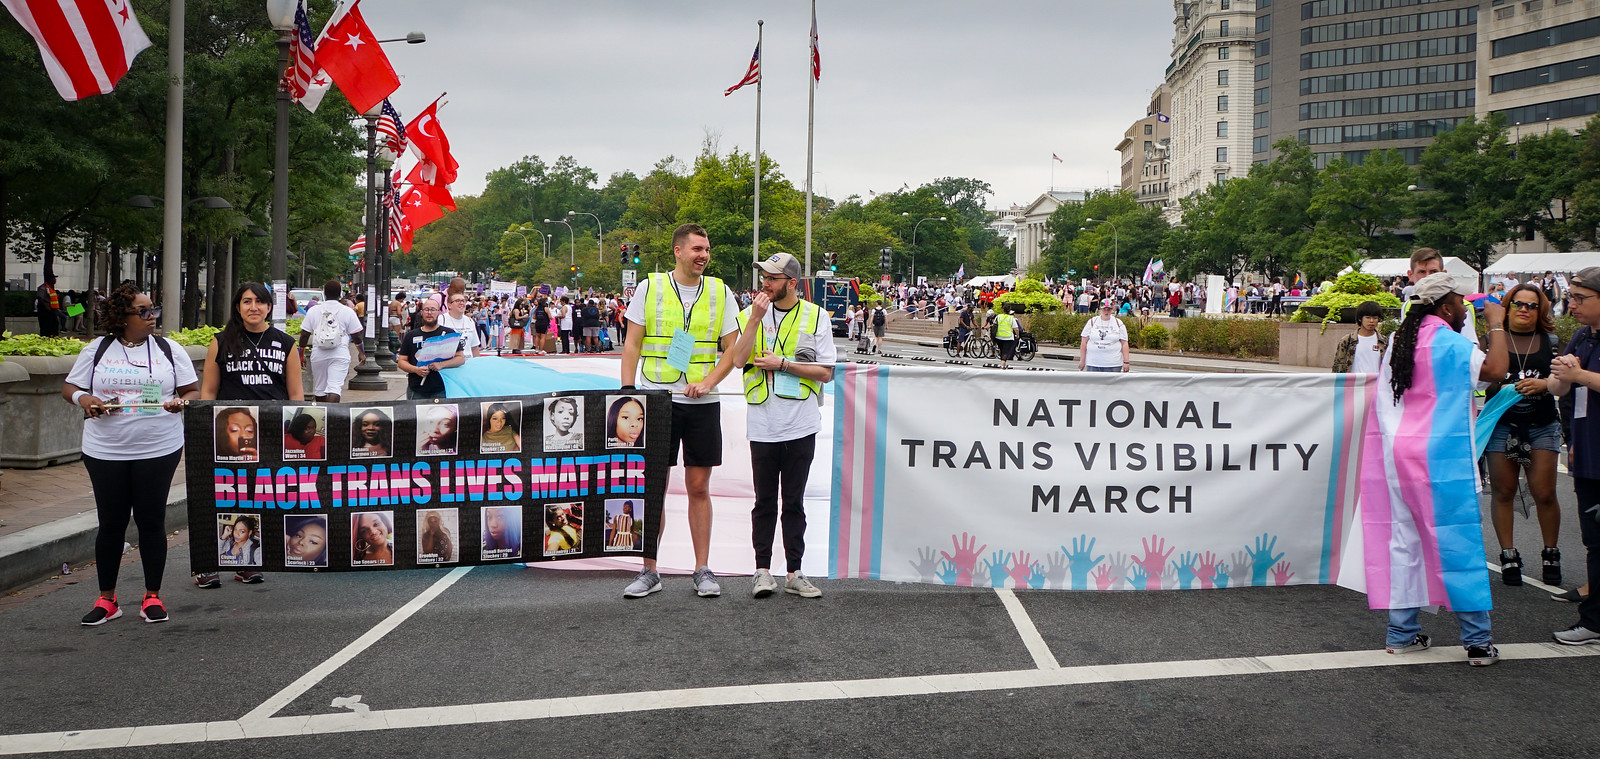 2019.09.28 National Trans Visibility March, Washington, DC USA 271 69067